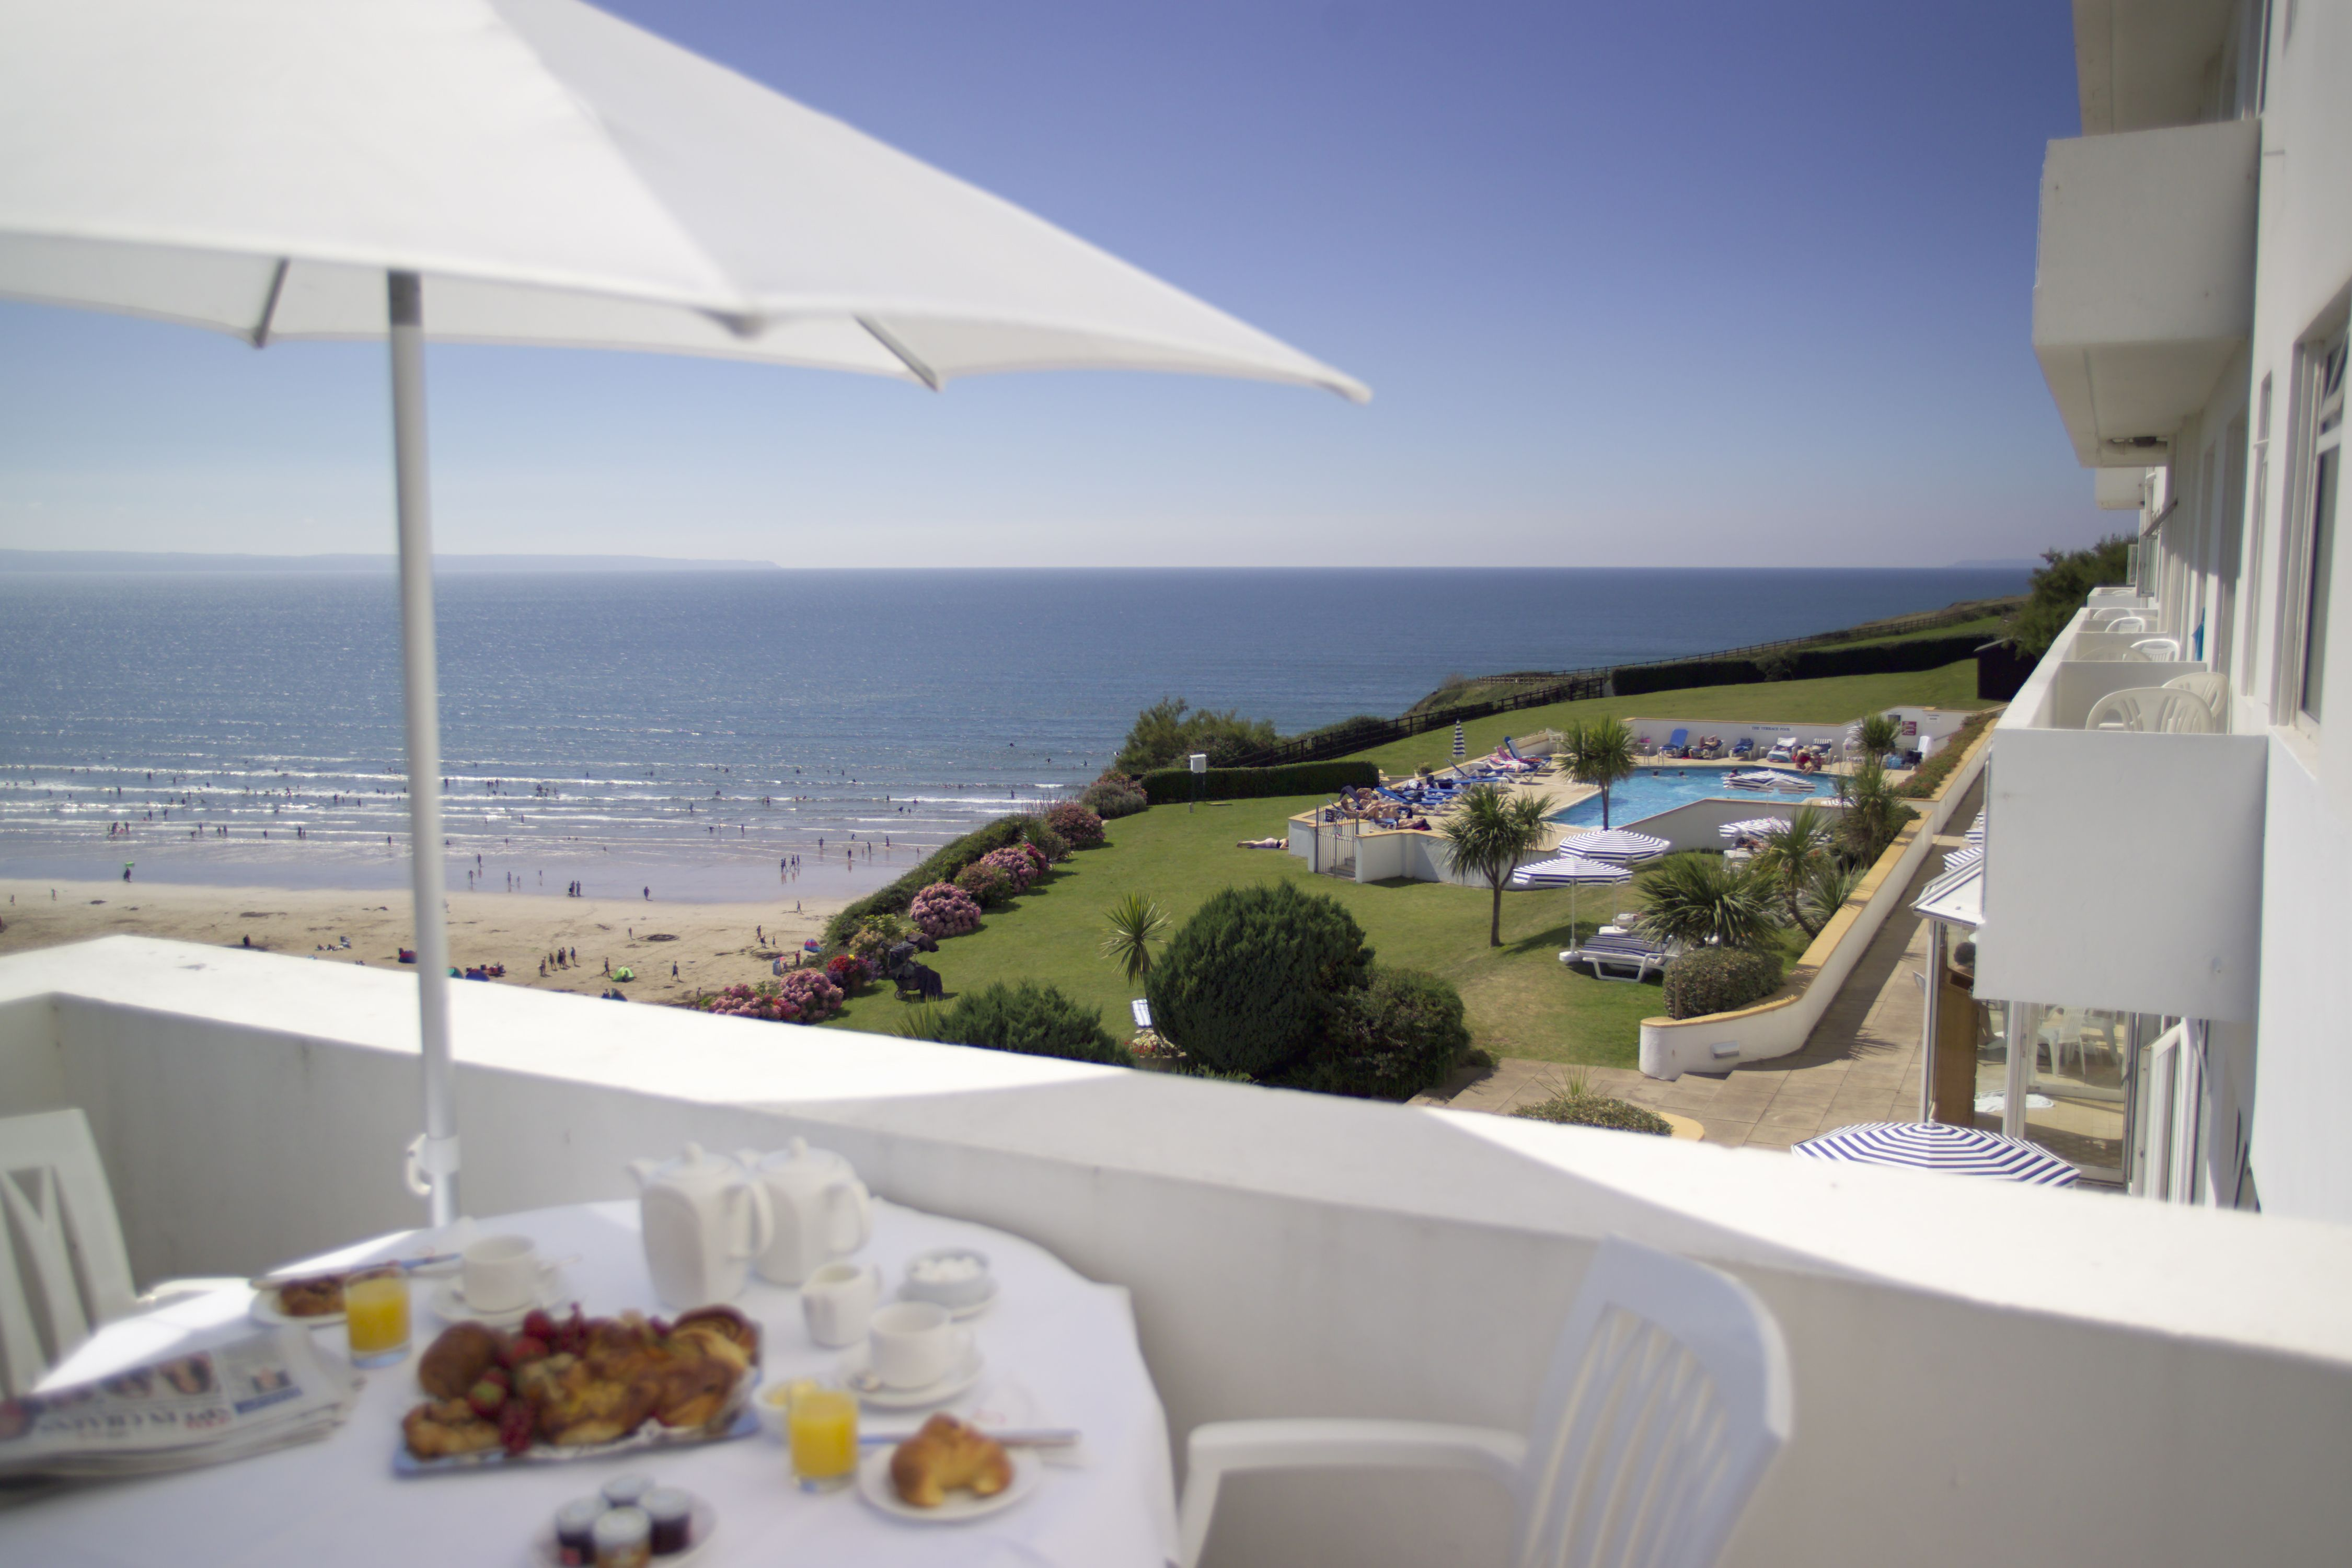 Saunton Sands Hotel On A Cliff Top Overlooking Braunton Burrows The Features Spa 2 Swimming Pools And Por Restaurant